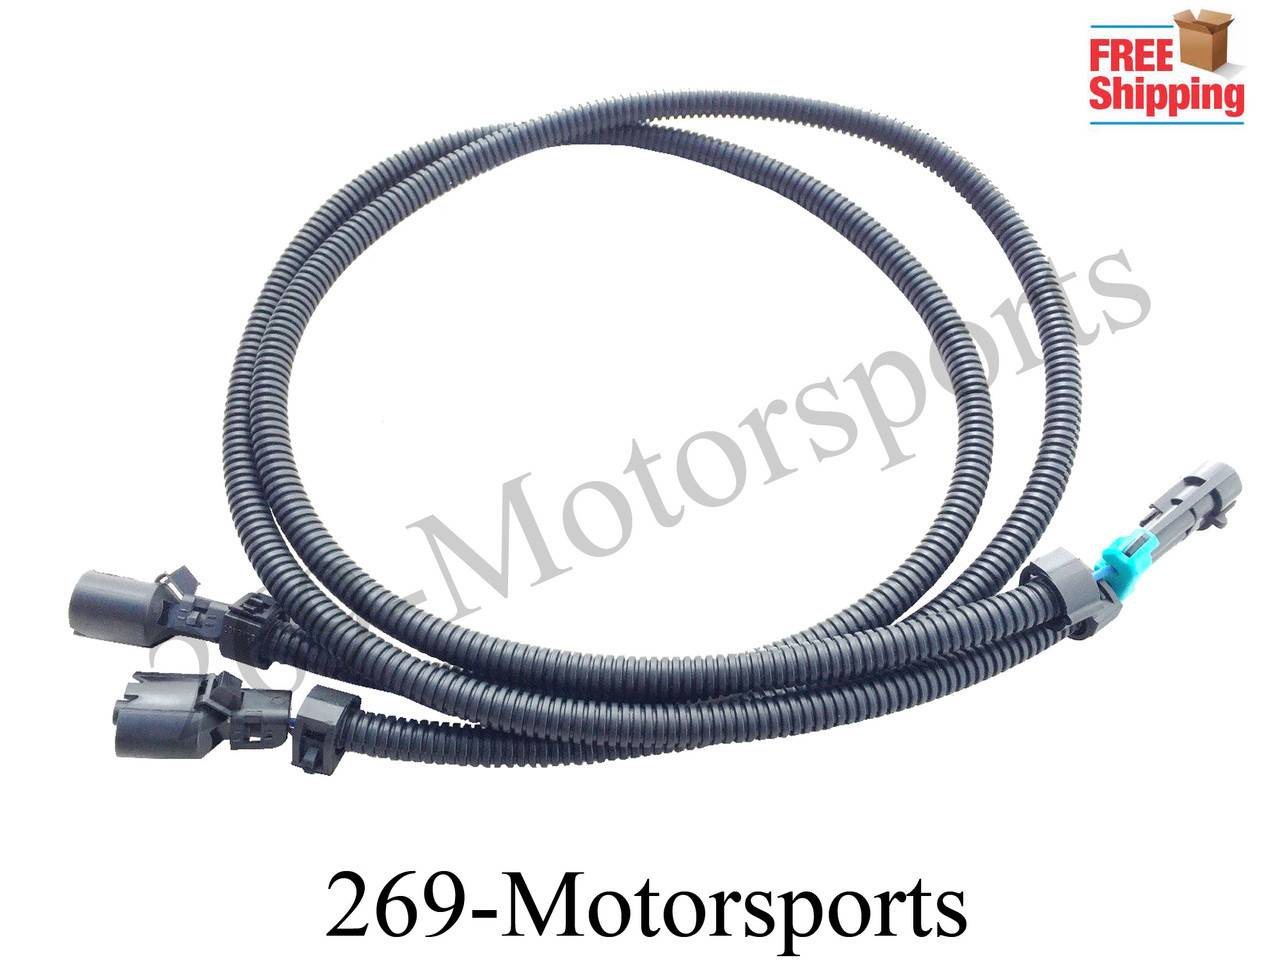 hight resolution of knock sensor extension wiring harness for ls1 ls6 to ls2 conversion adapter gm